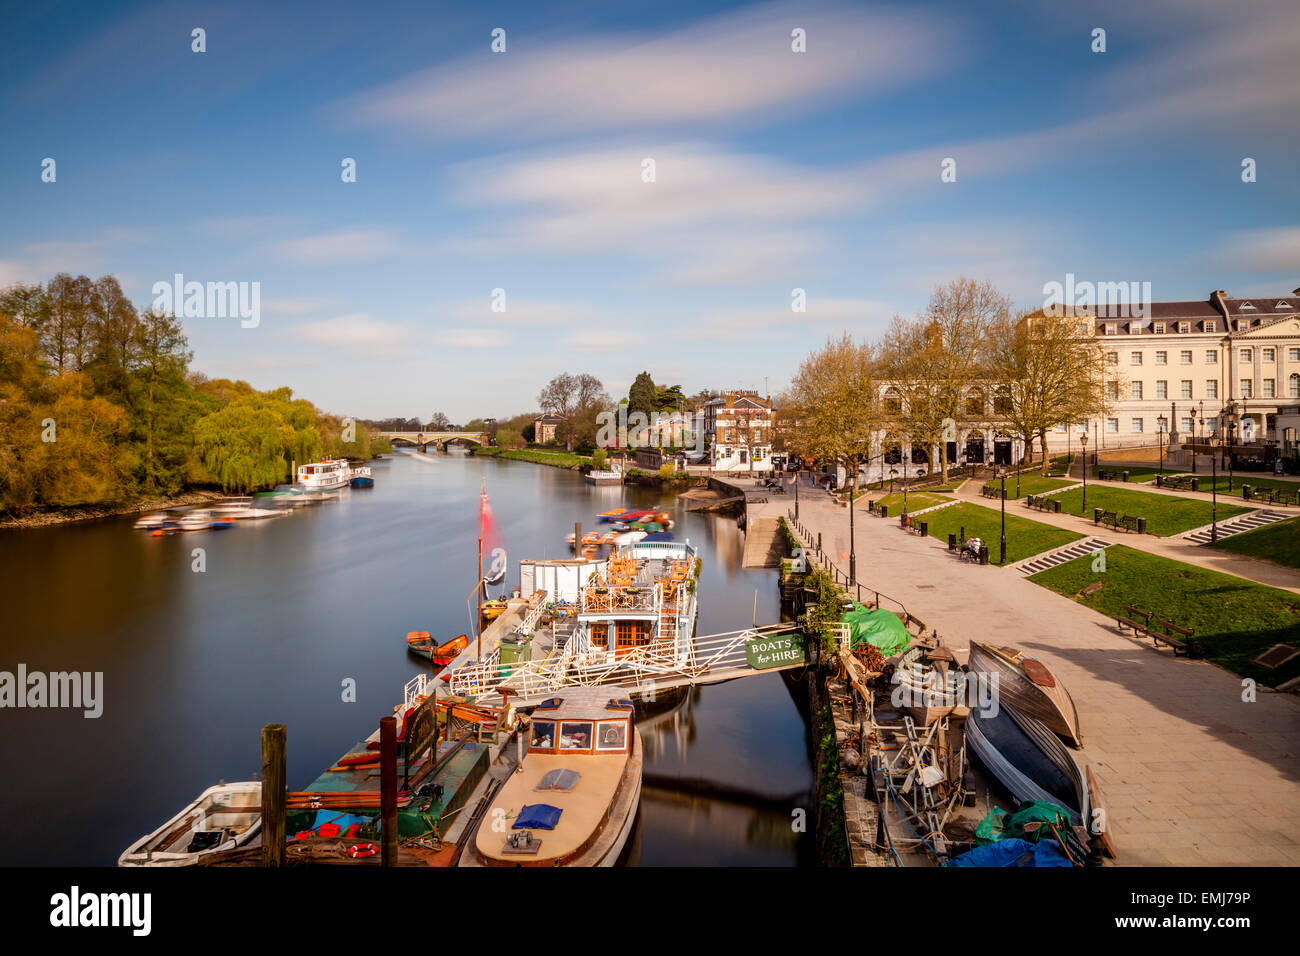 The River Thames at Richmond, London, England - Stock Image